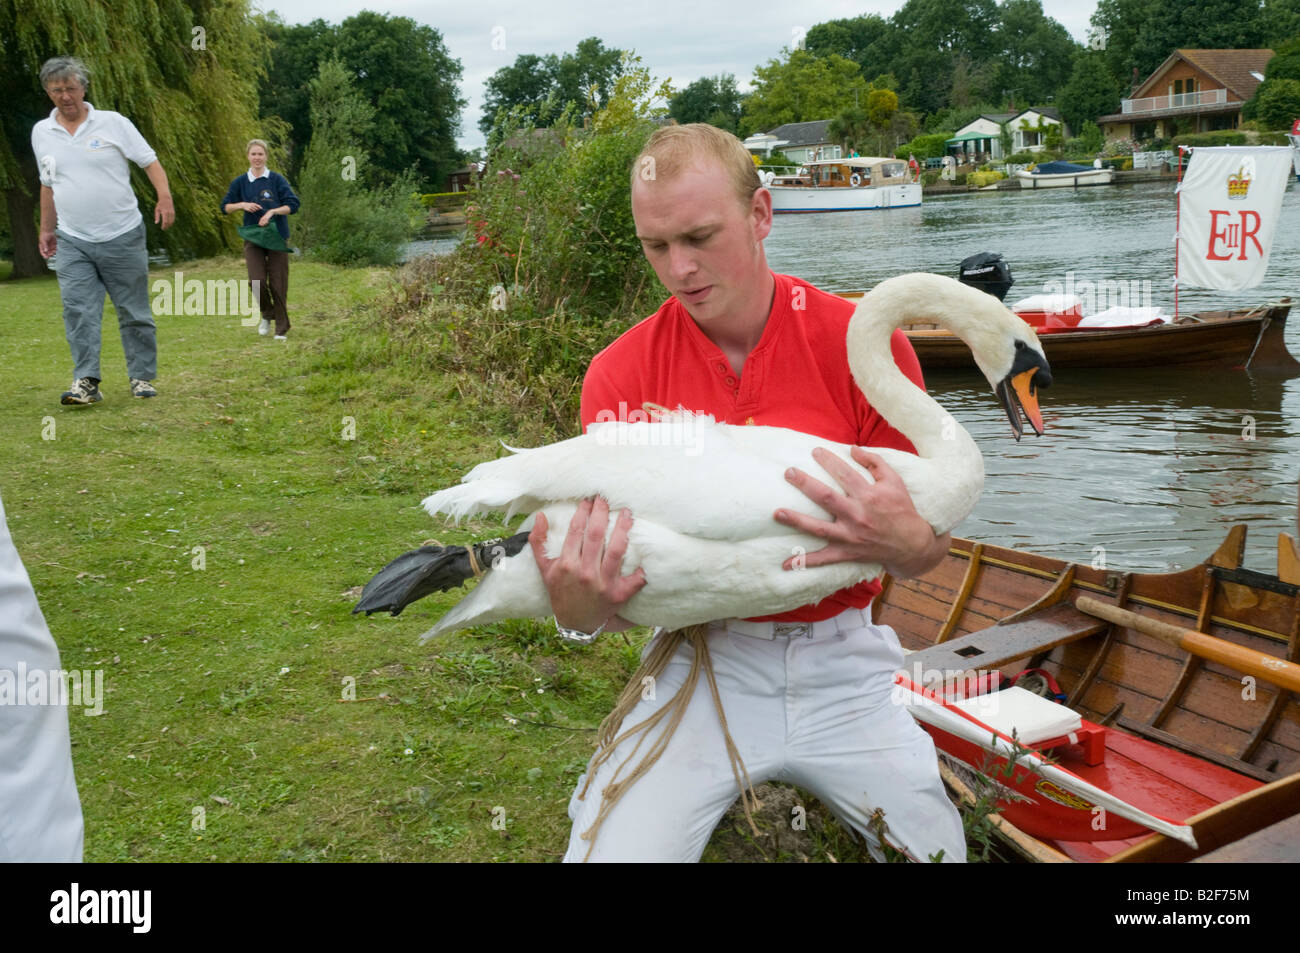 This swan with its tied feet sits quietly in the upper's arms as it is brought onto the river bank for examination - Stock Image